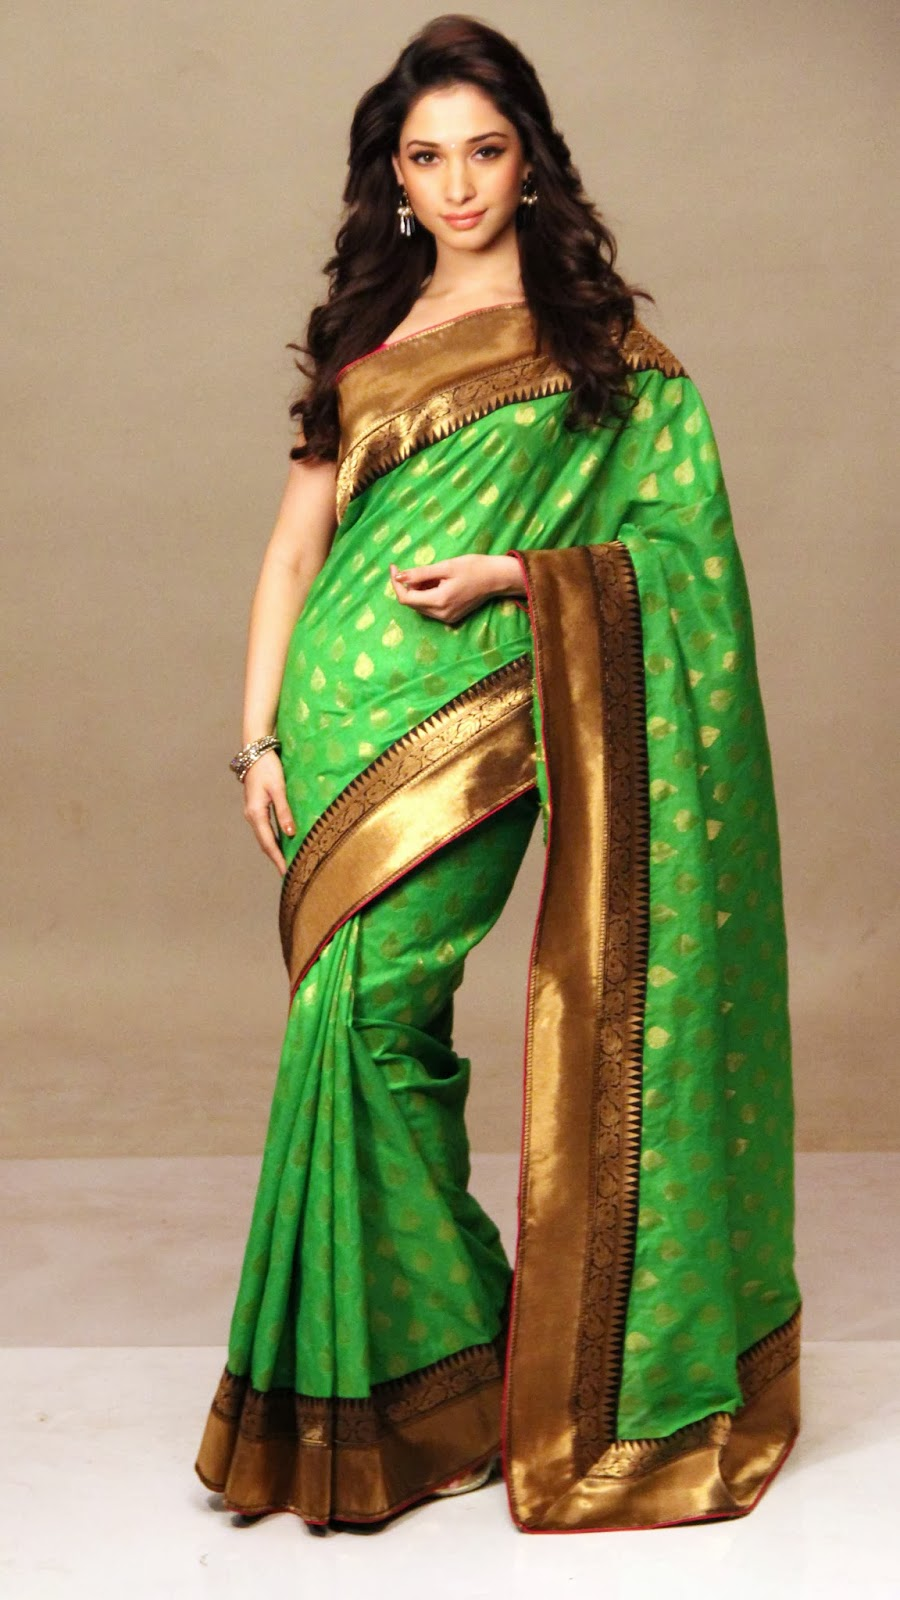 Tamanna bhatia dark green saree pictures